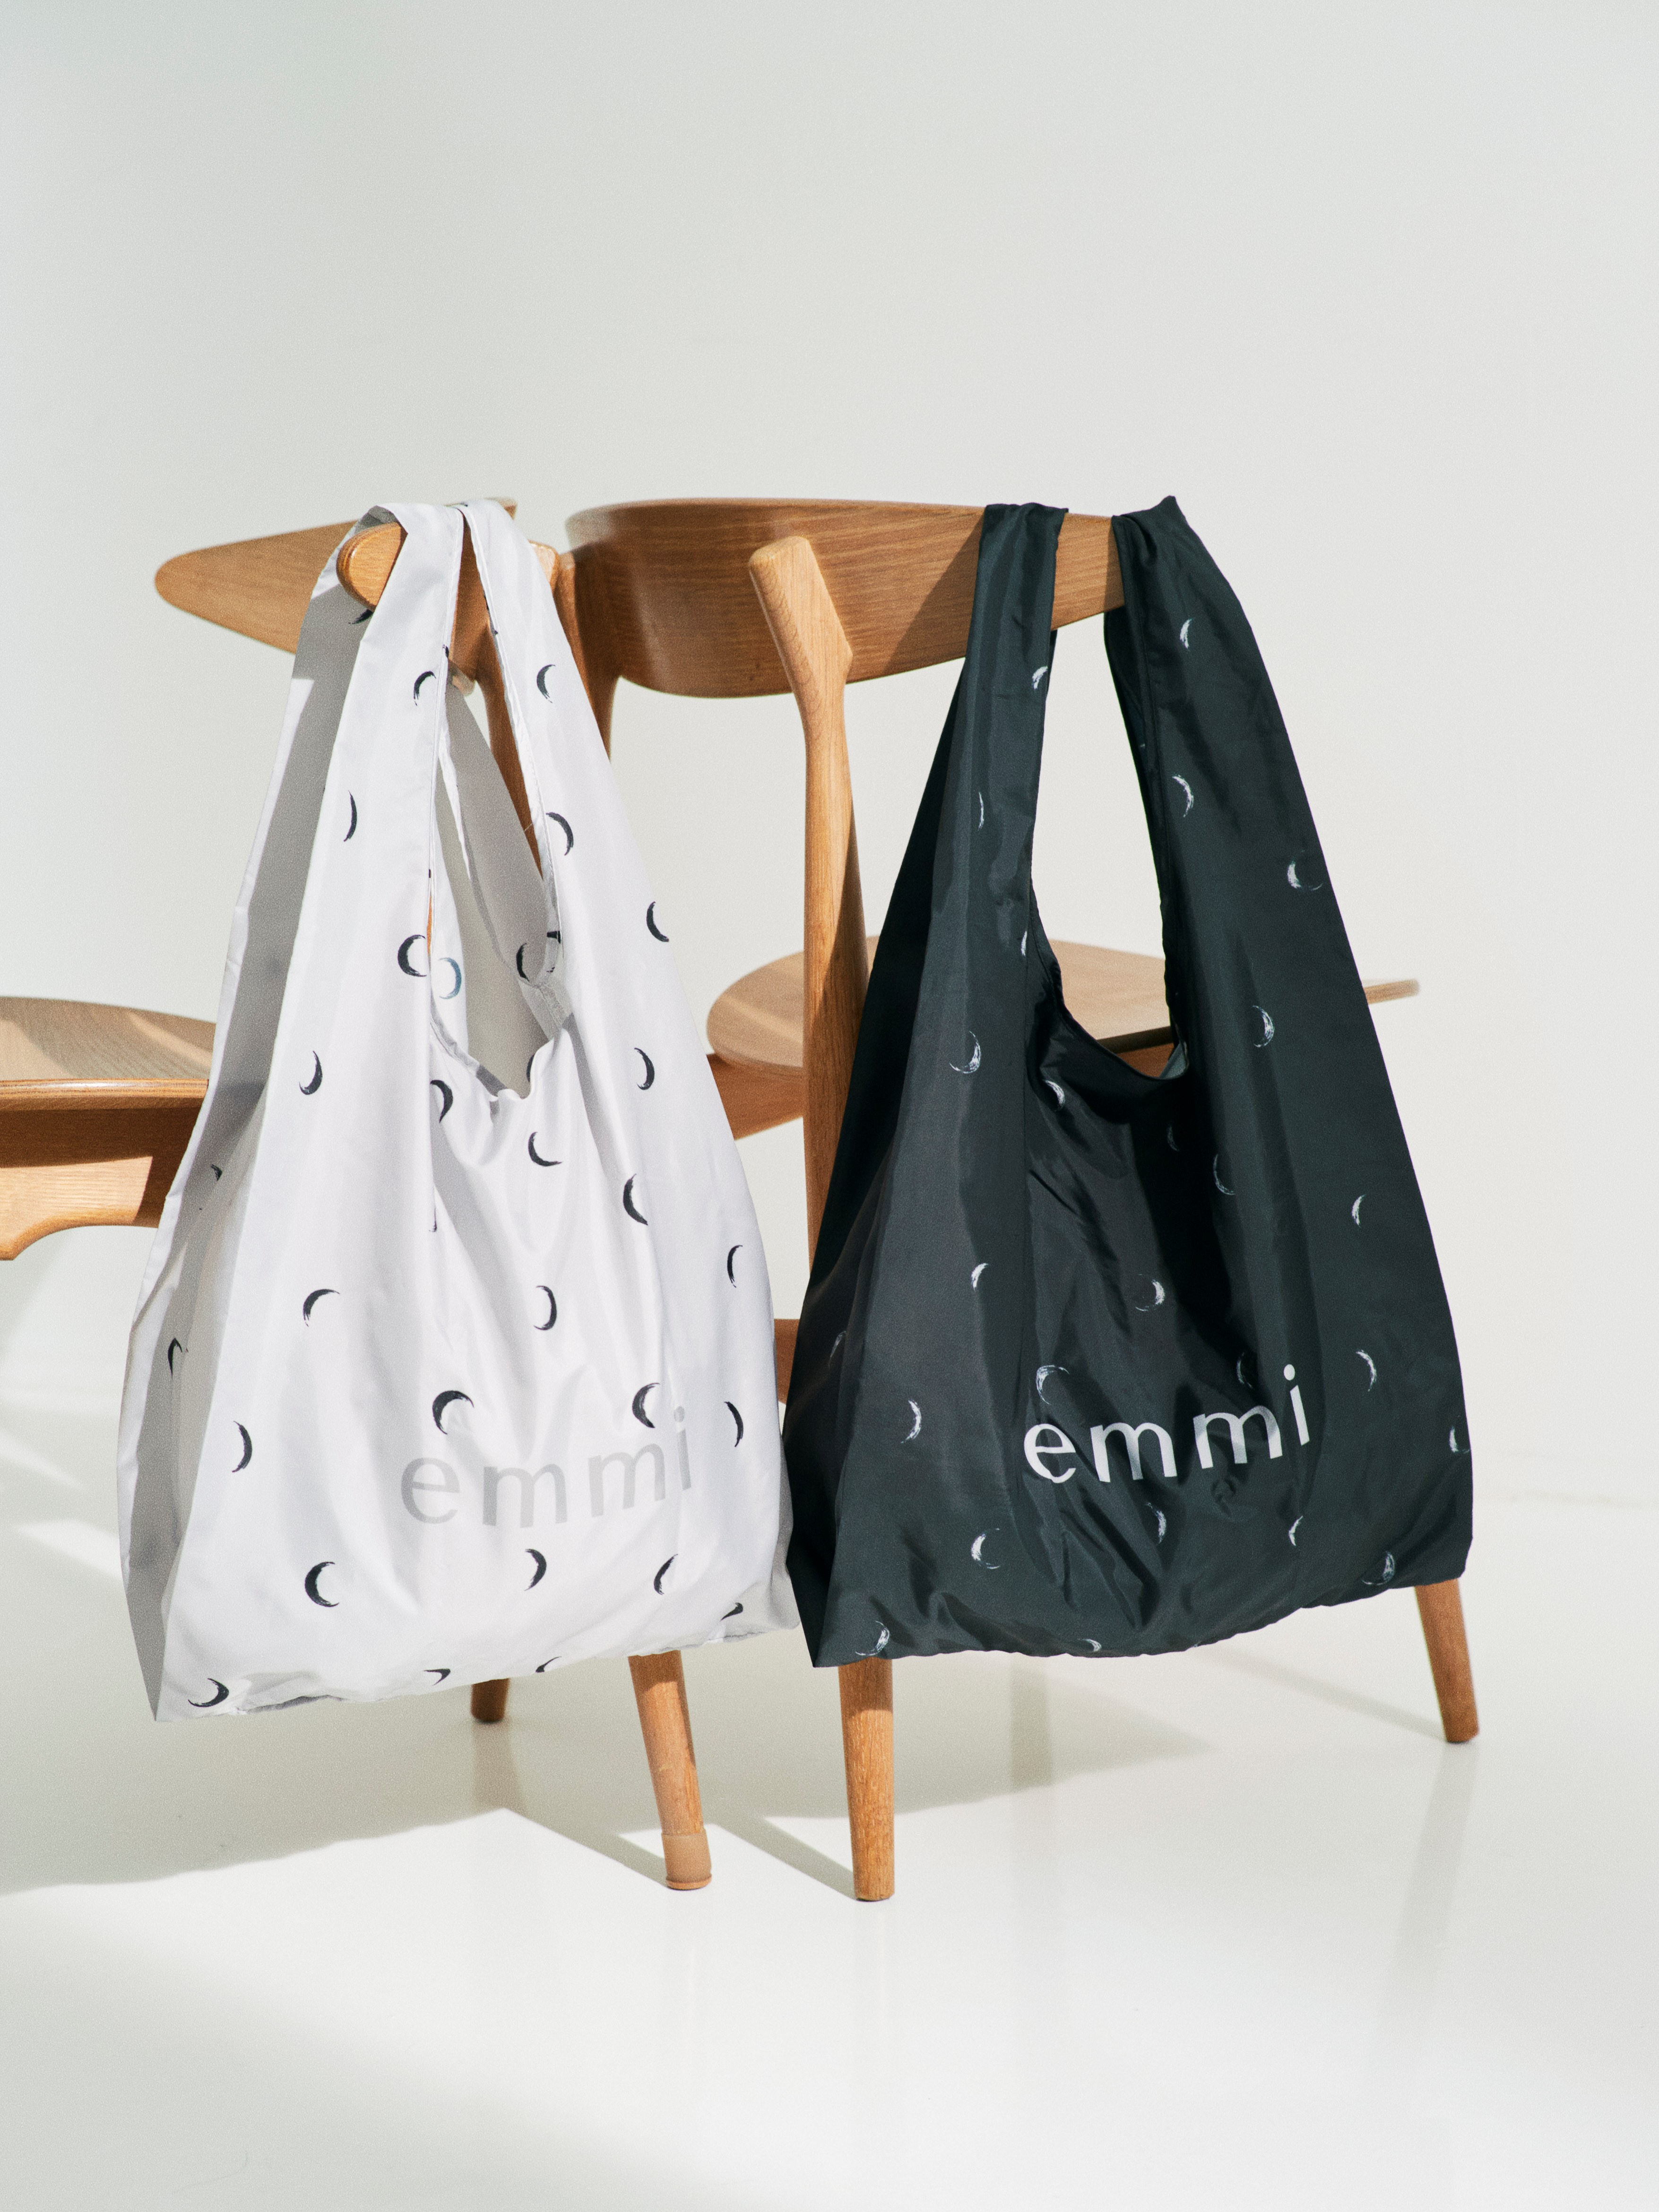 【emmi atelier】emmi ムーンプリントecoバッグ